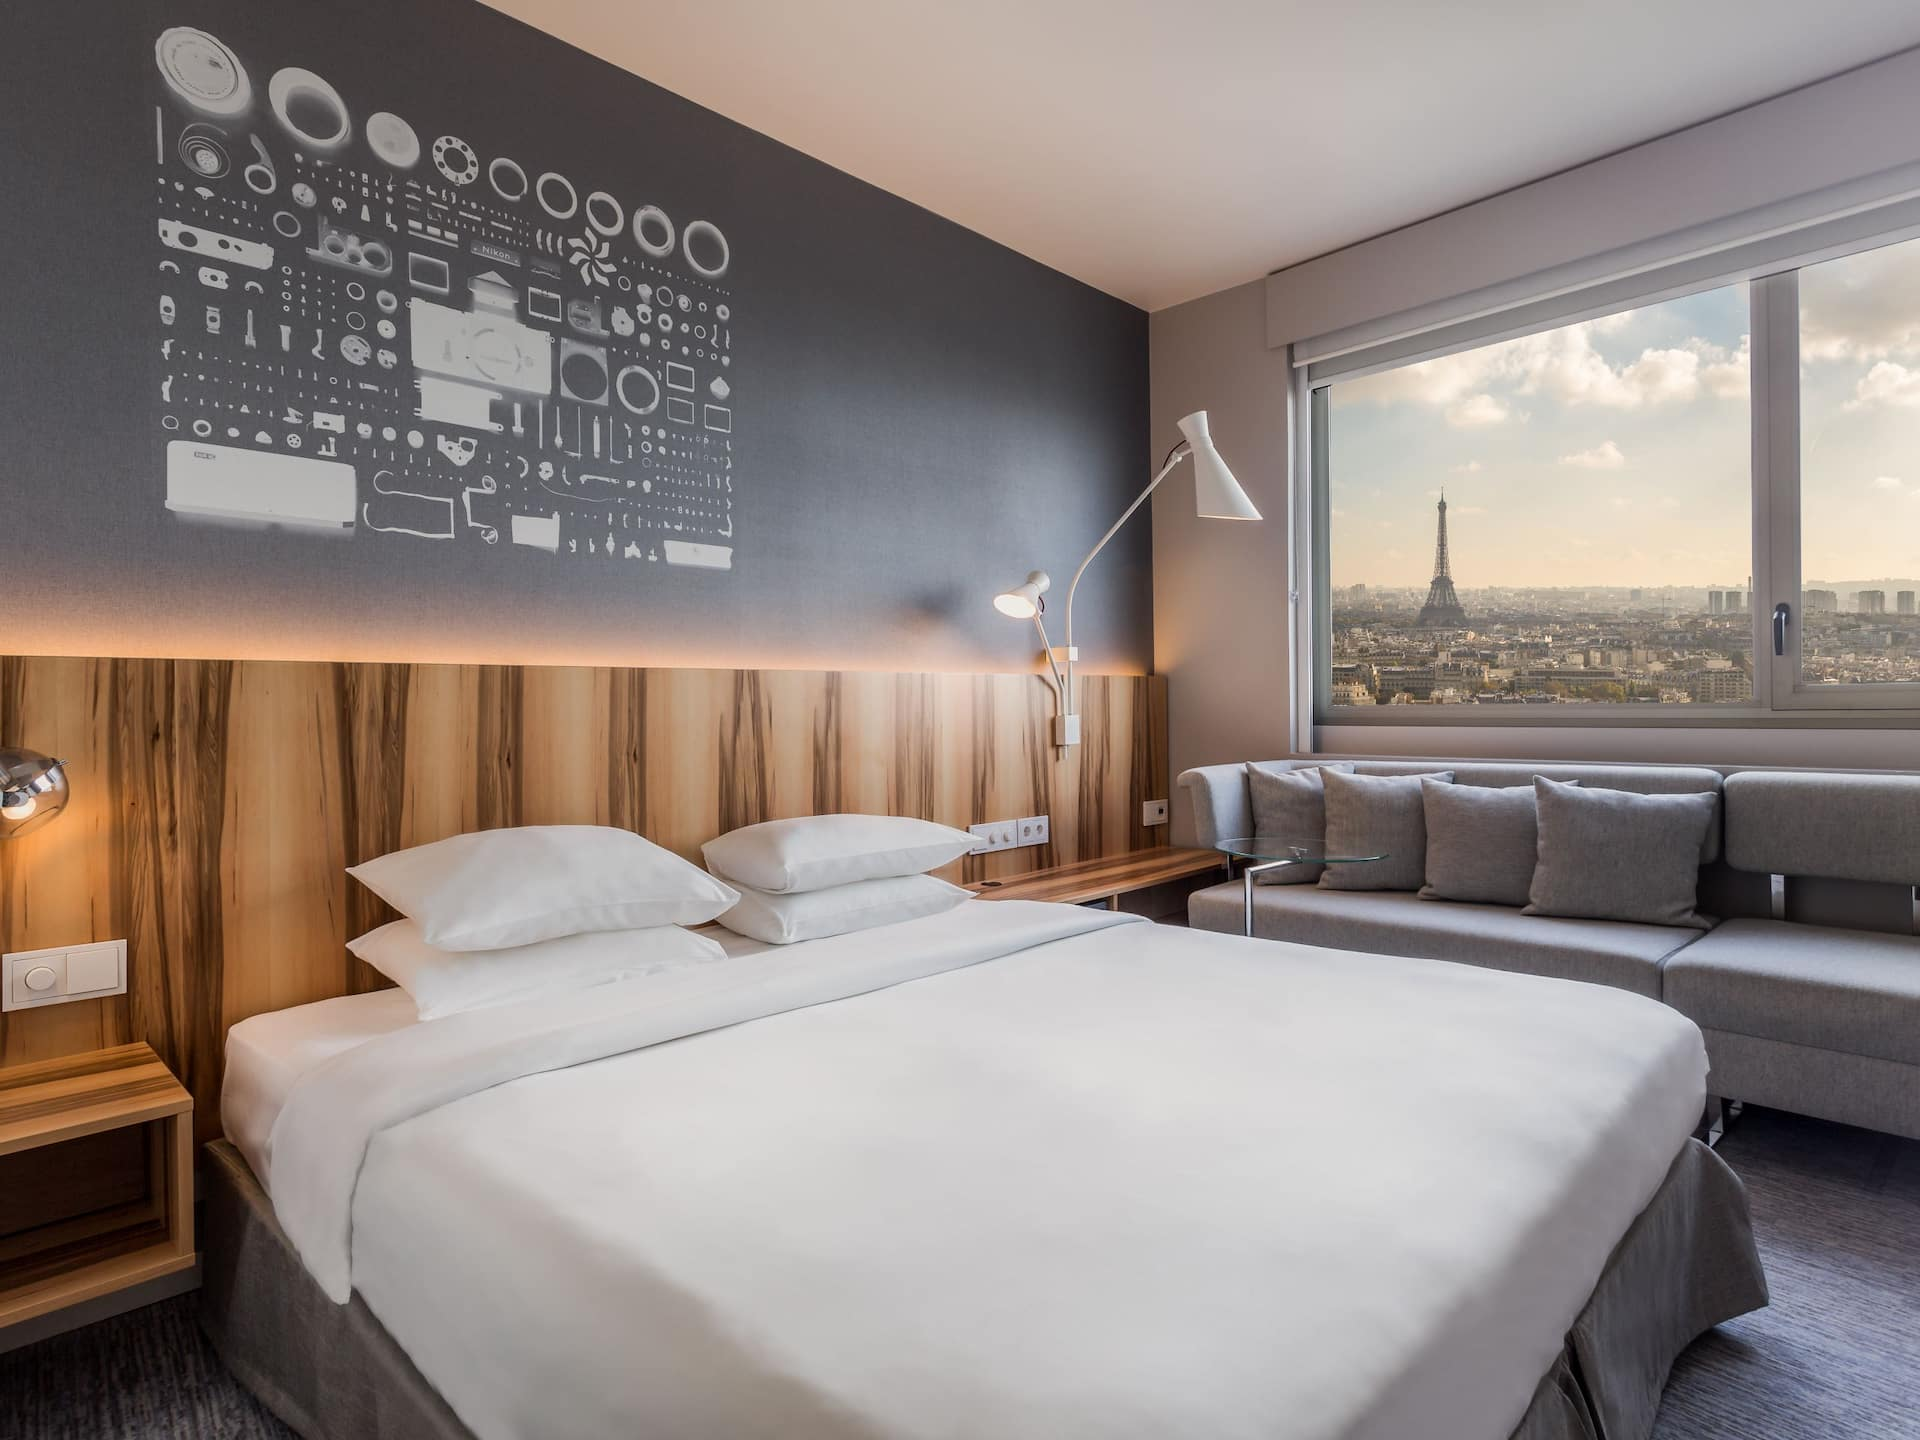 Deluxe King room with view over Paris at Hotel Hyatt Regency Paris Etoile